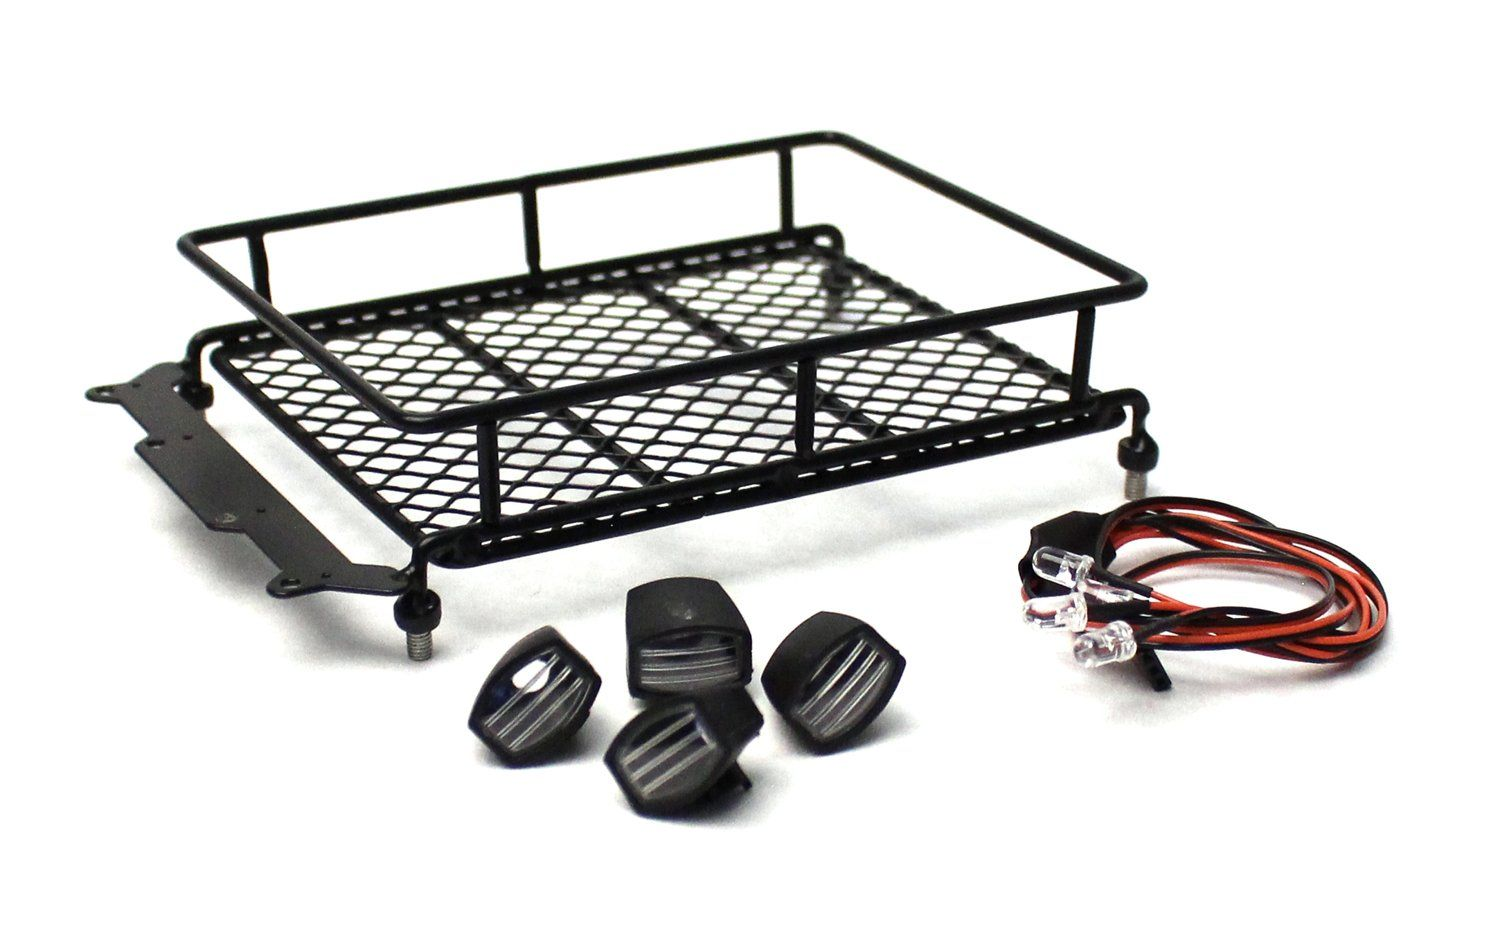 1 10 Scaler Metal Mesh Roof Rack Oval Lights Hot Metal Mesh Roof Rack Metal